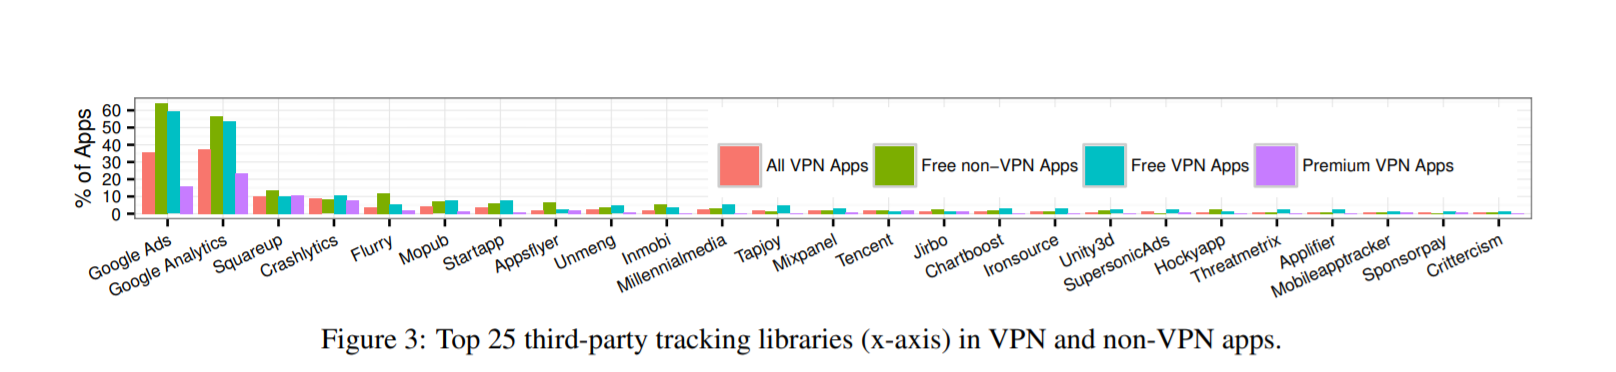 Third-party tracking on apps free vs paid